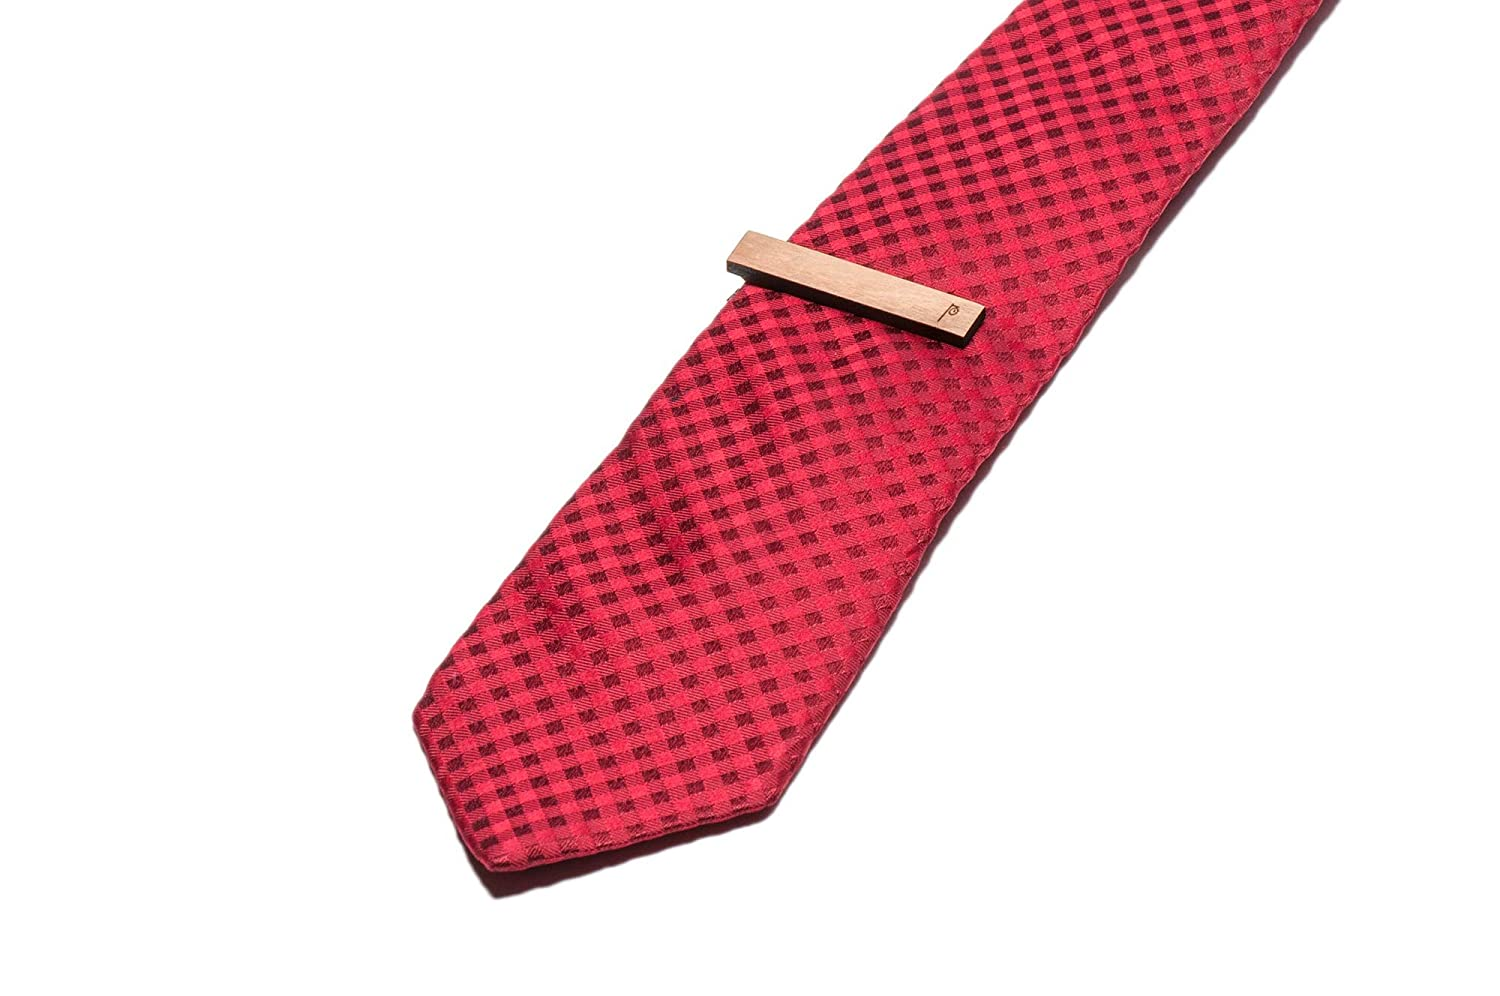 Wooden Accessories Company Wooden Tie Clips with Laser Engraved Station Clock Design Cherry Wood Tie Bar Engraved in The USA